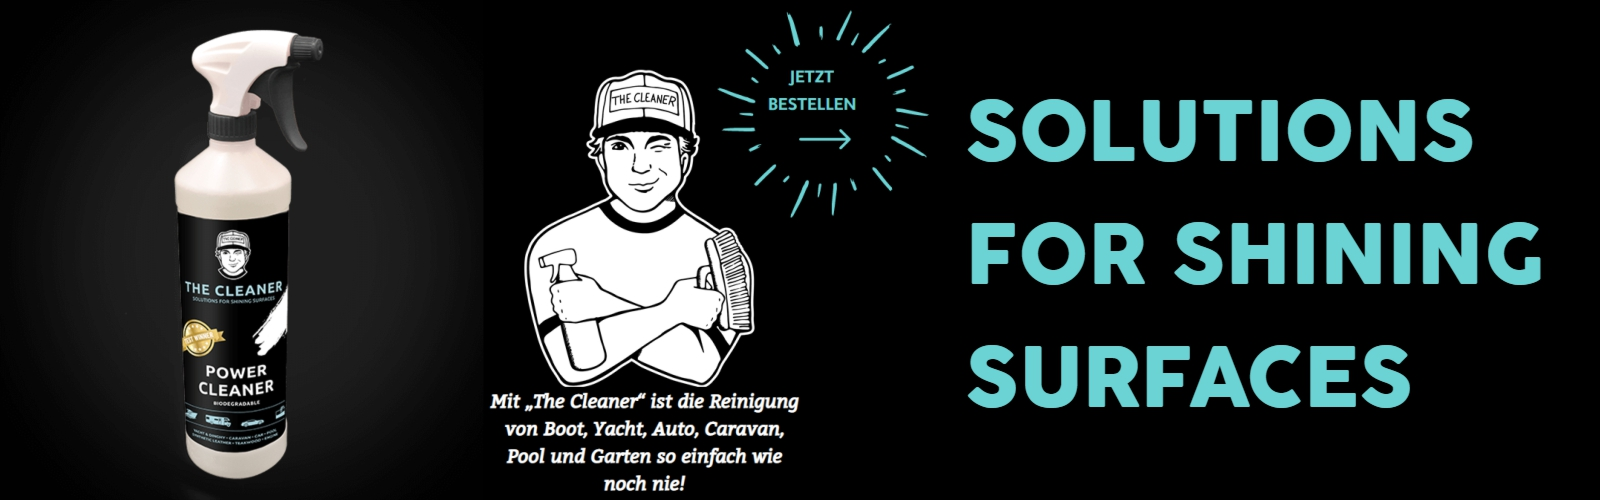 The Cleaner - Schnelle Anwendung, perfektes E